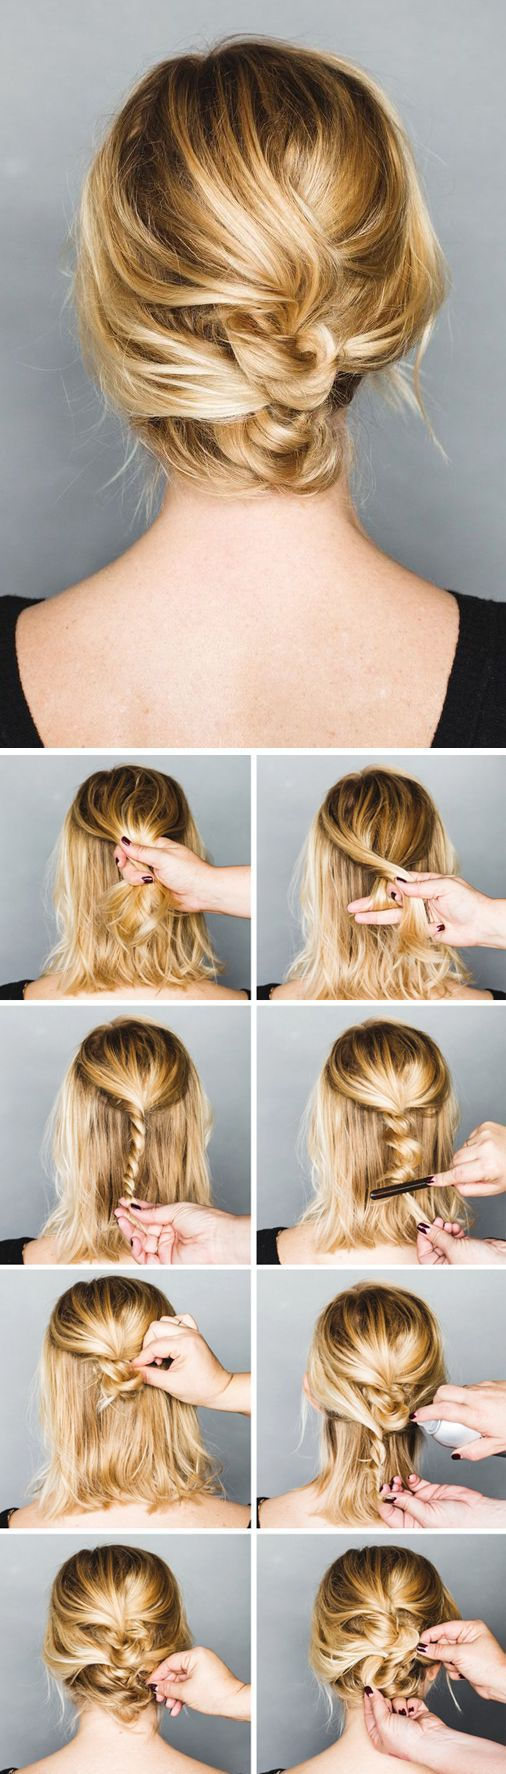 11 Pretty Simple Bun Hairstyles Tutorials 11 - Pretty Designs